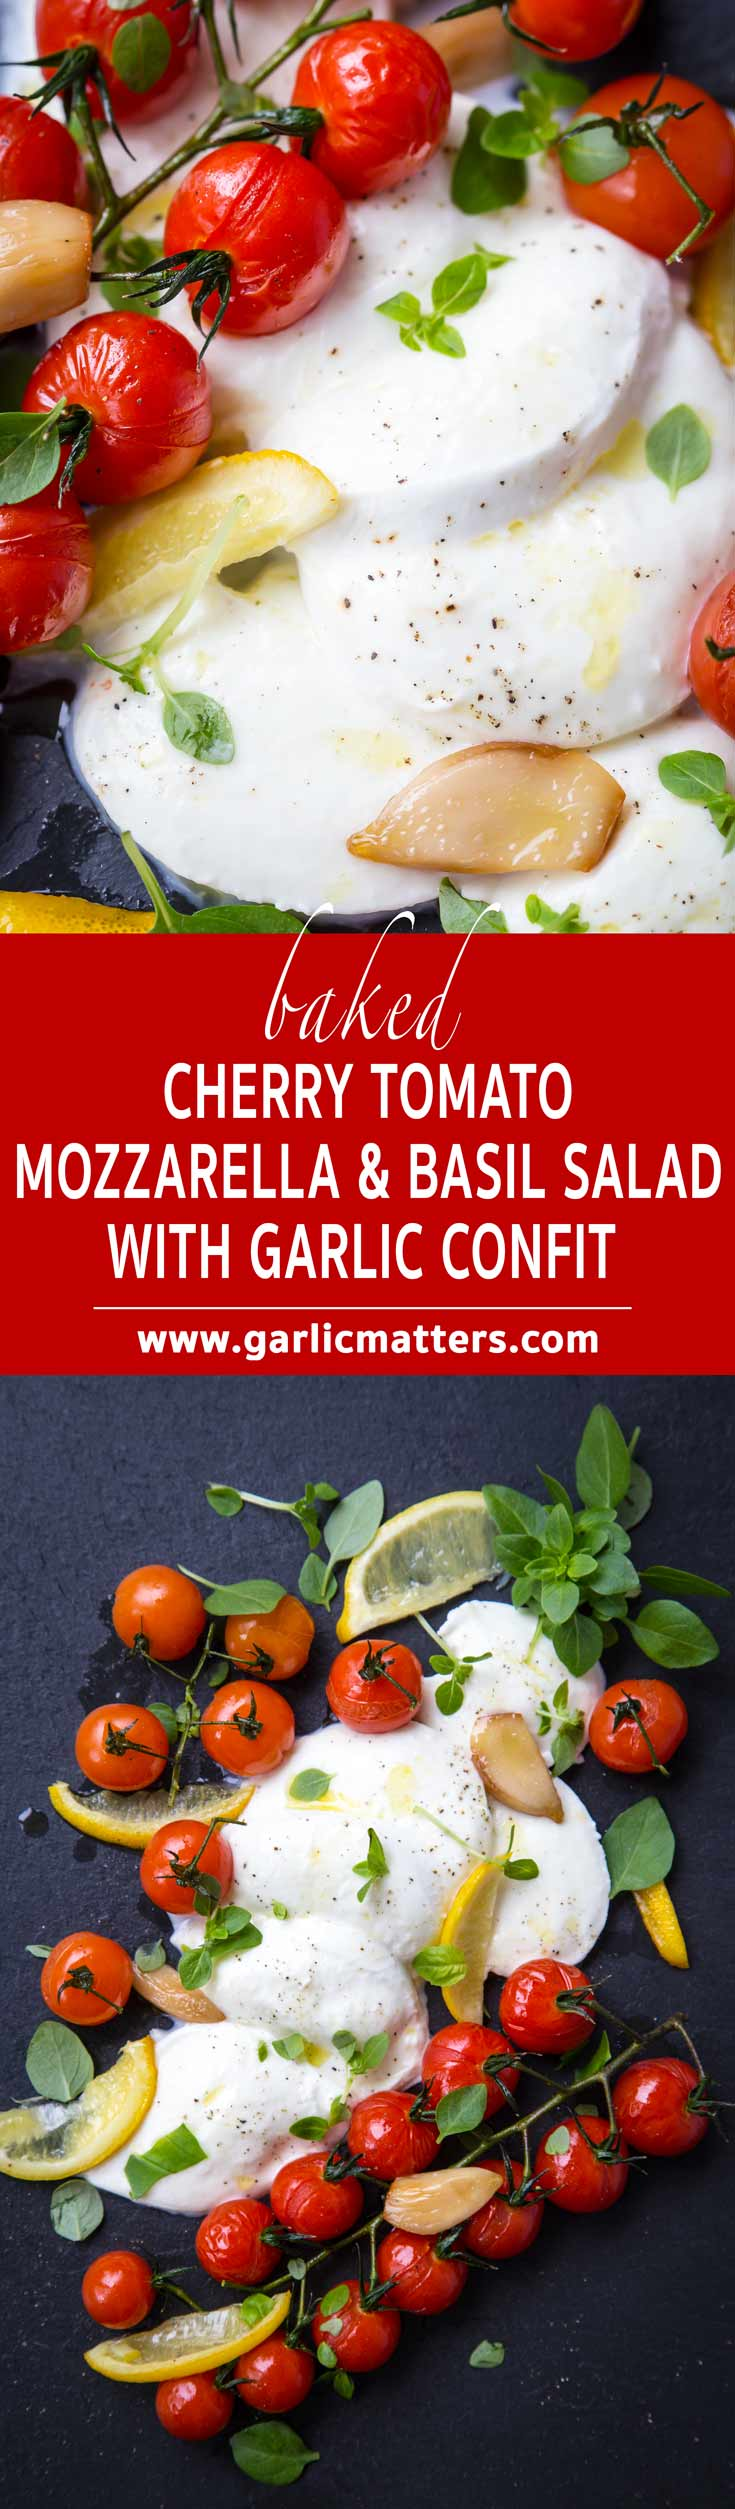 Baked Cherry Tomato, Mozzarella and Basil Salad with Garlic Confit is an alternative, elegant, winter take on the traditional caprese.